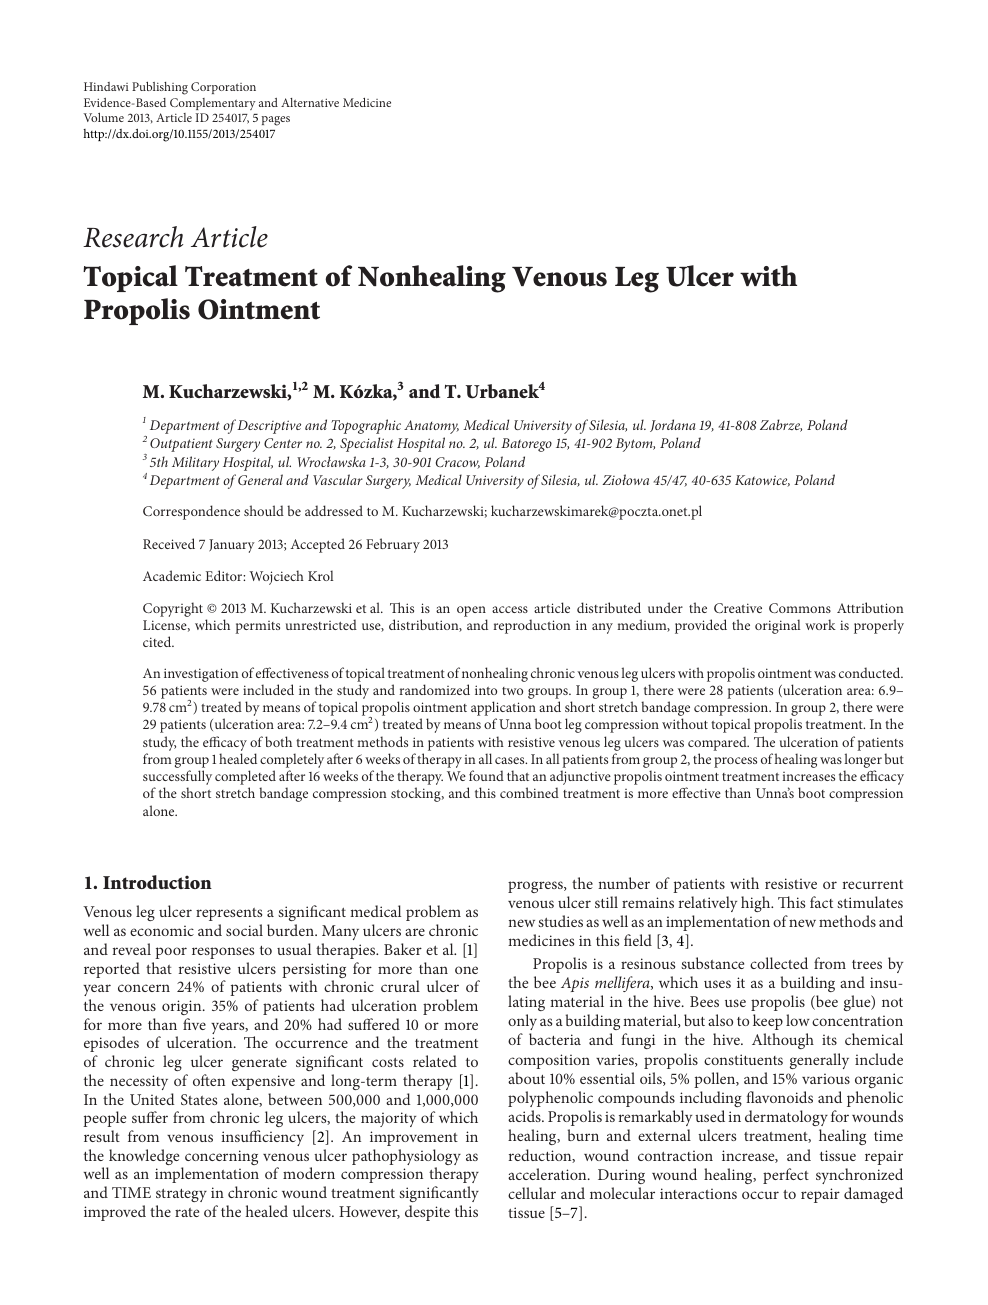 Topical Treatment of Nonhealing Venous Leg Ulcer with Propolis